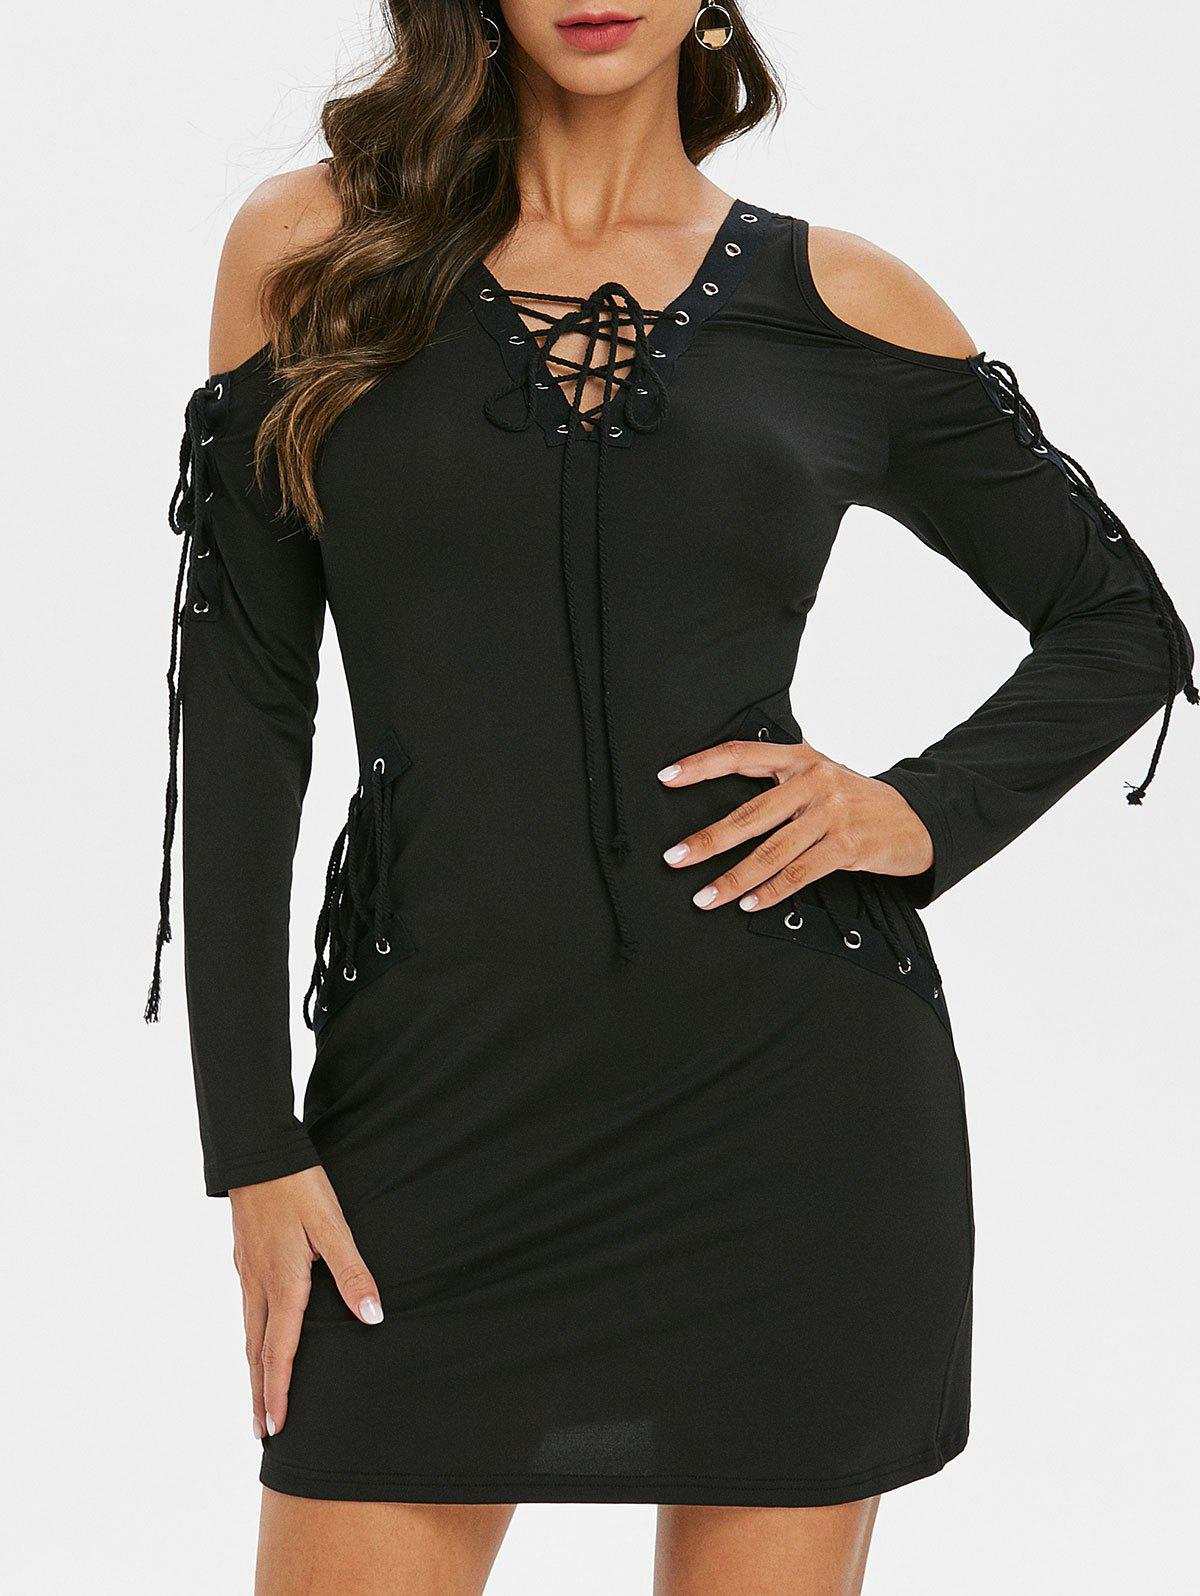 Lace Up Grommet Long Sleeve Bodycon Dress - BLACK XL